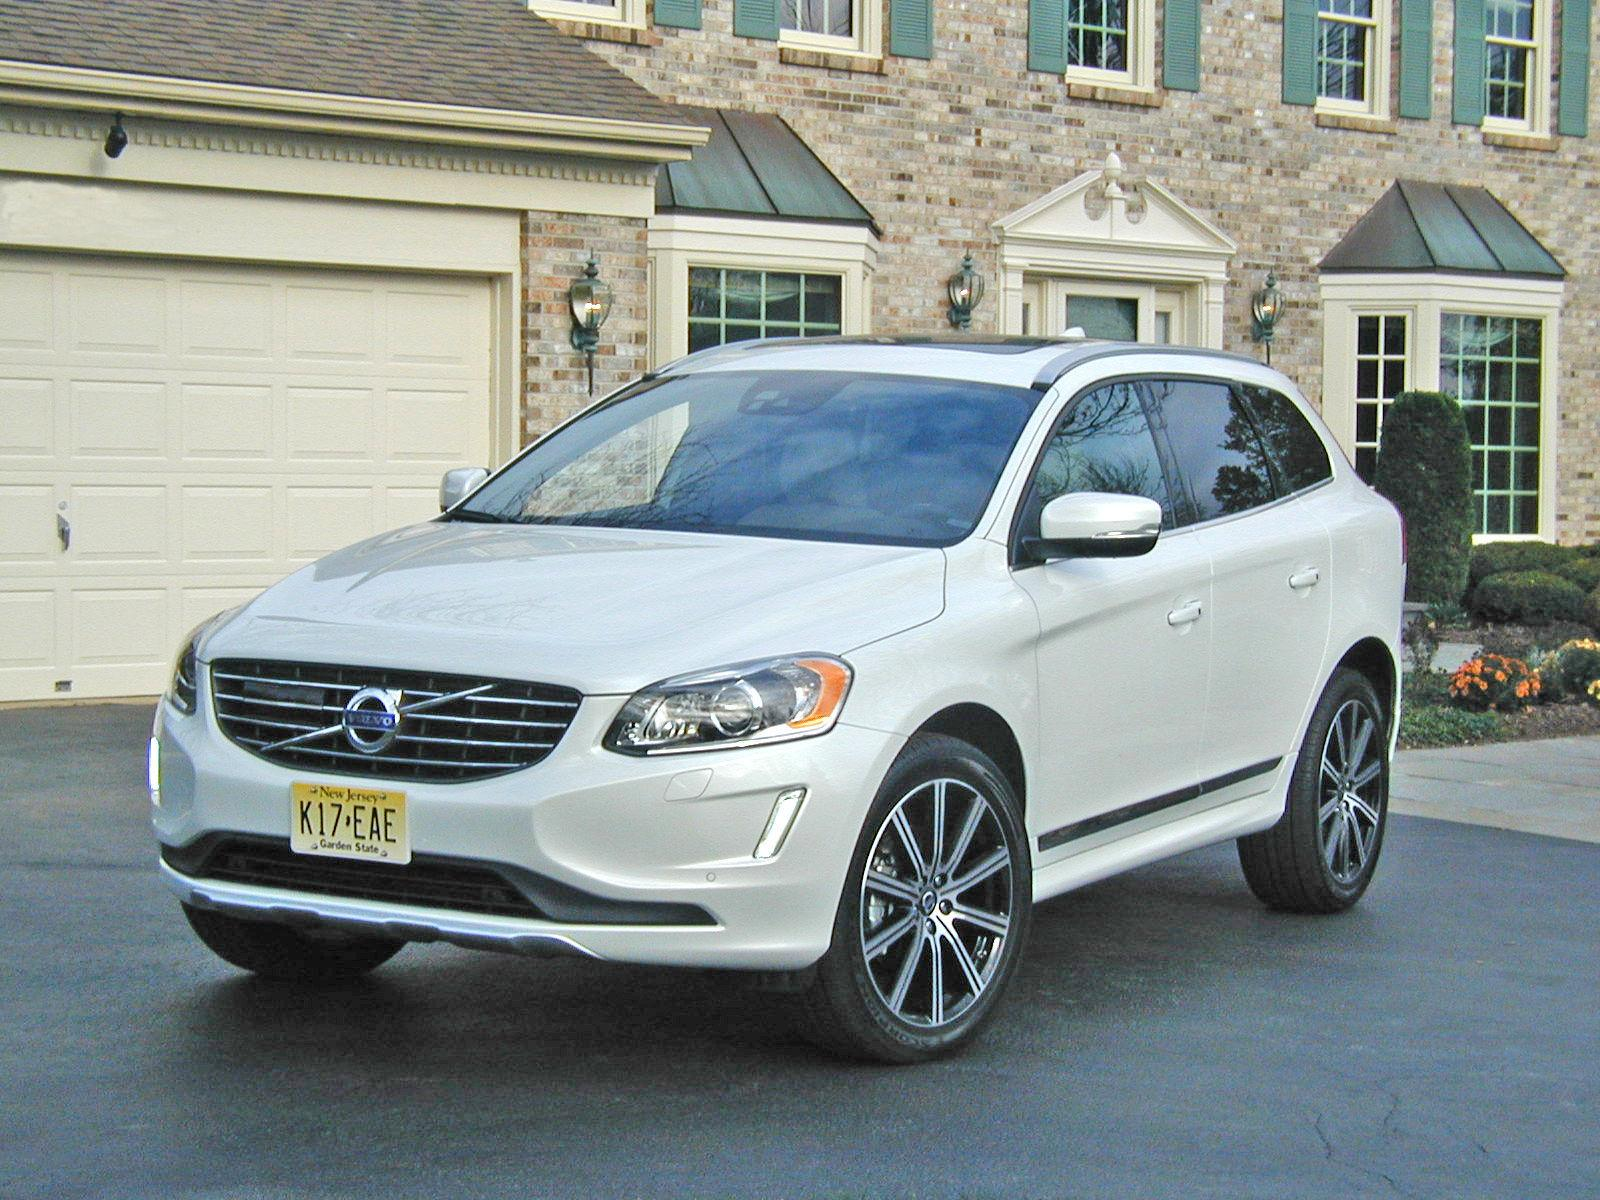 2015 volvo xc60 crossover heralds driving efficiency drive times with jim jackson nwitimes com 2015 volvo xc60 crossover heralds